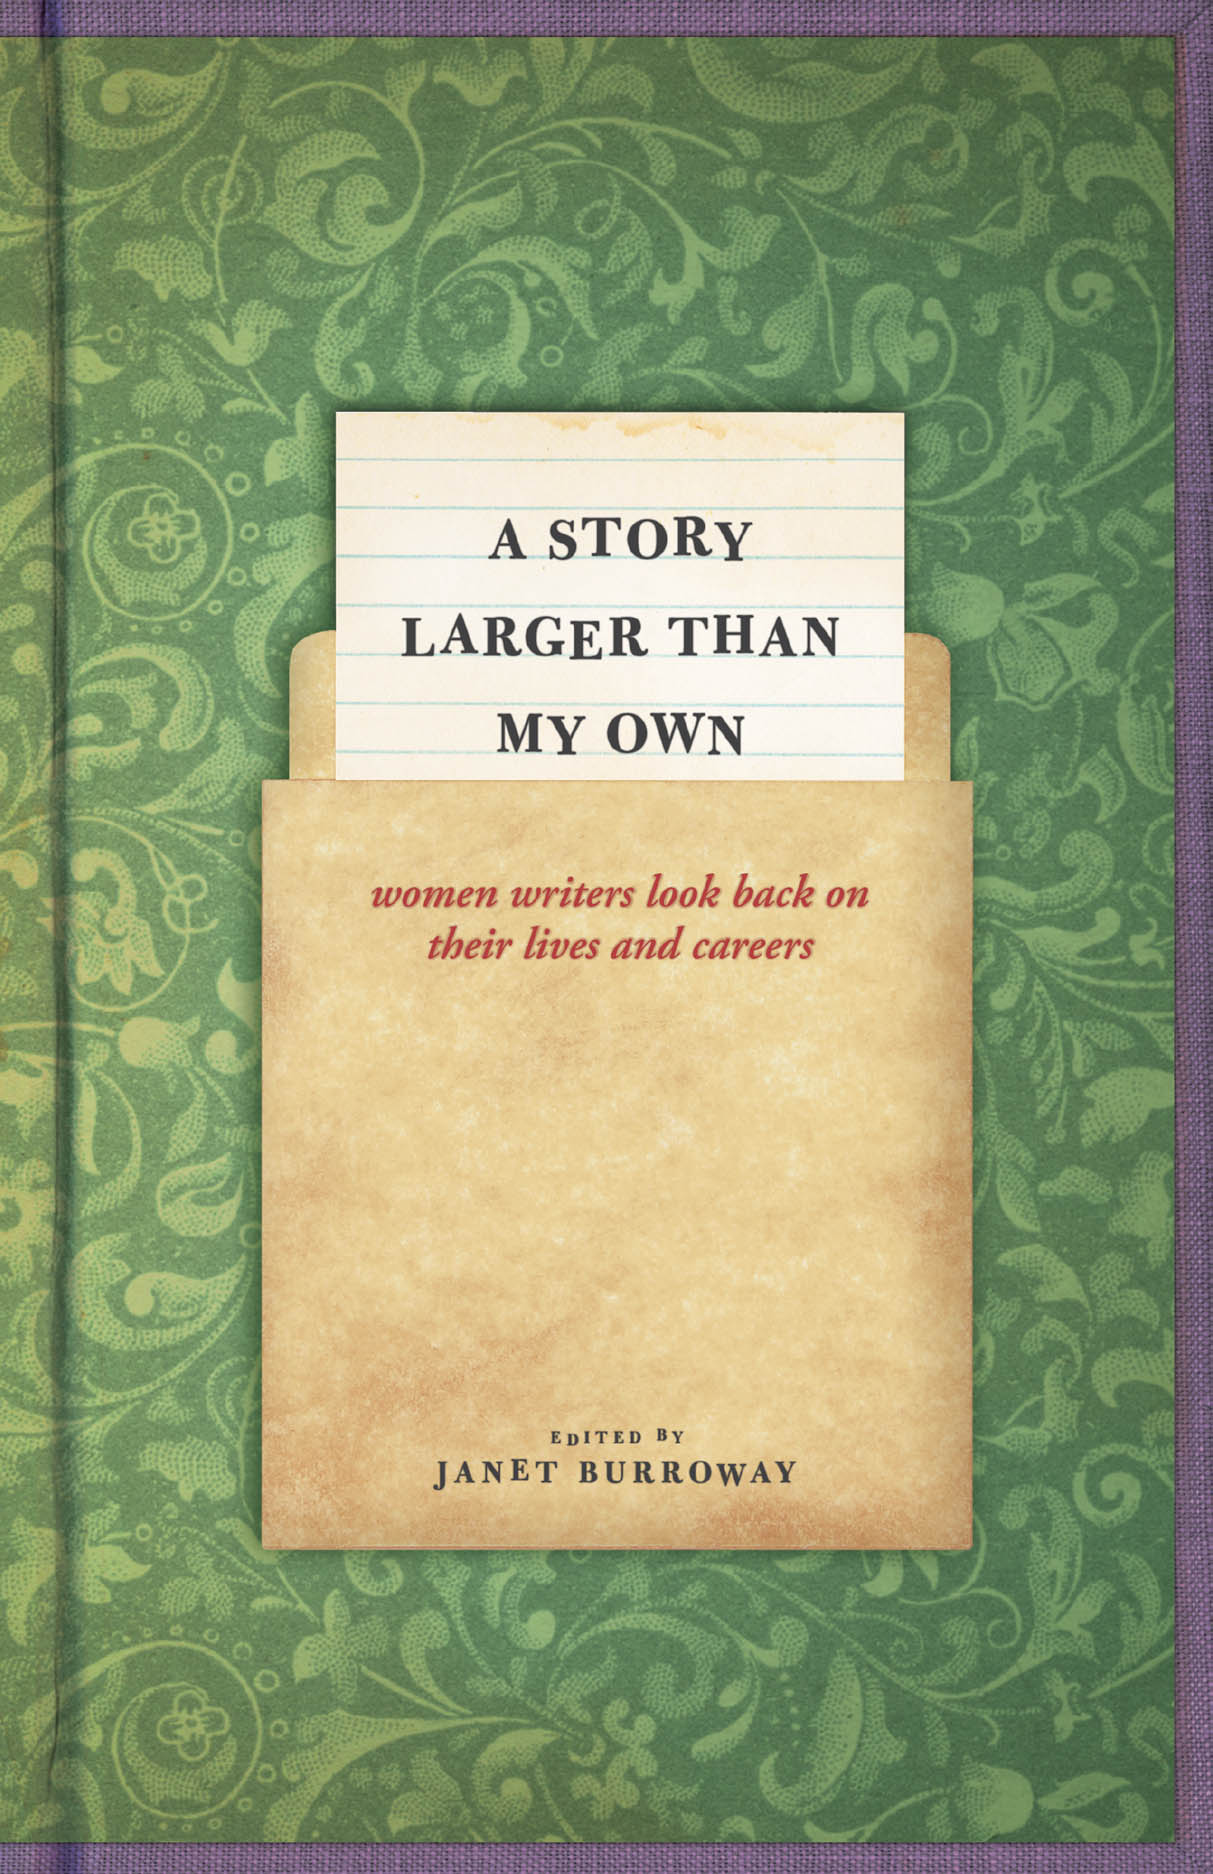 A Story Larger than My Own: Women Writers Look Back on Their Lives and Careers